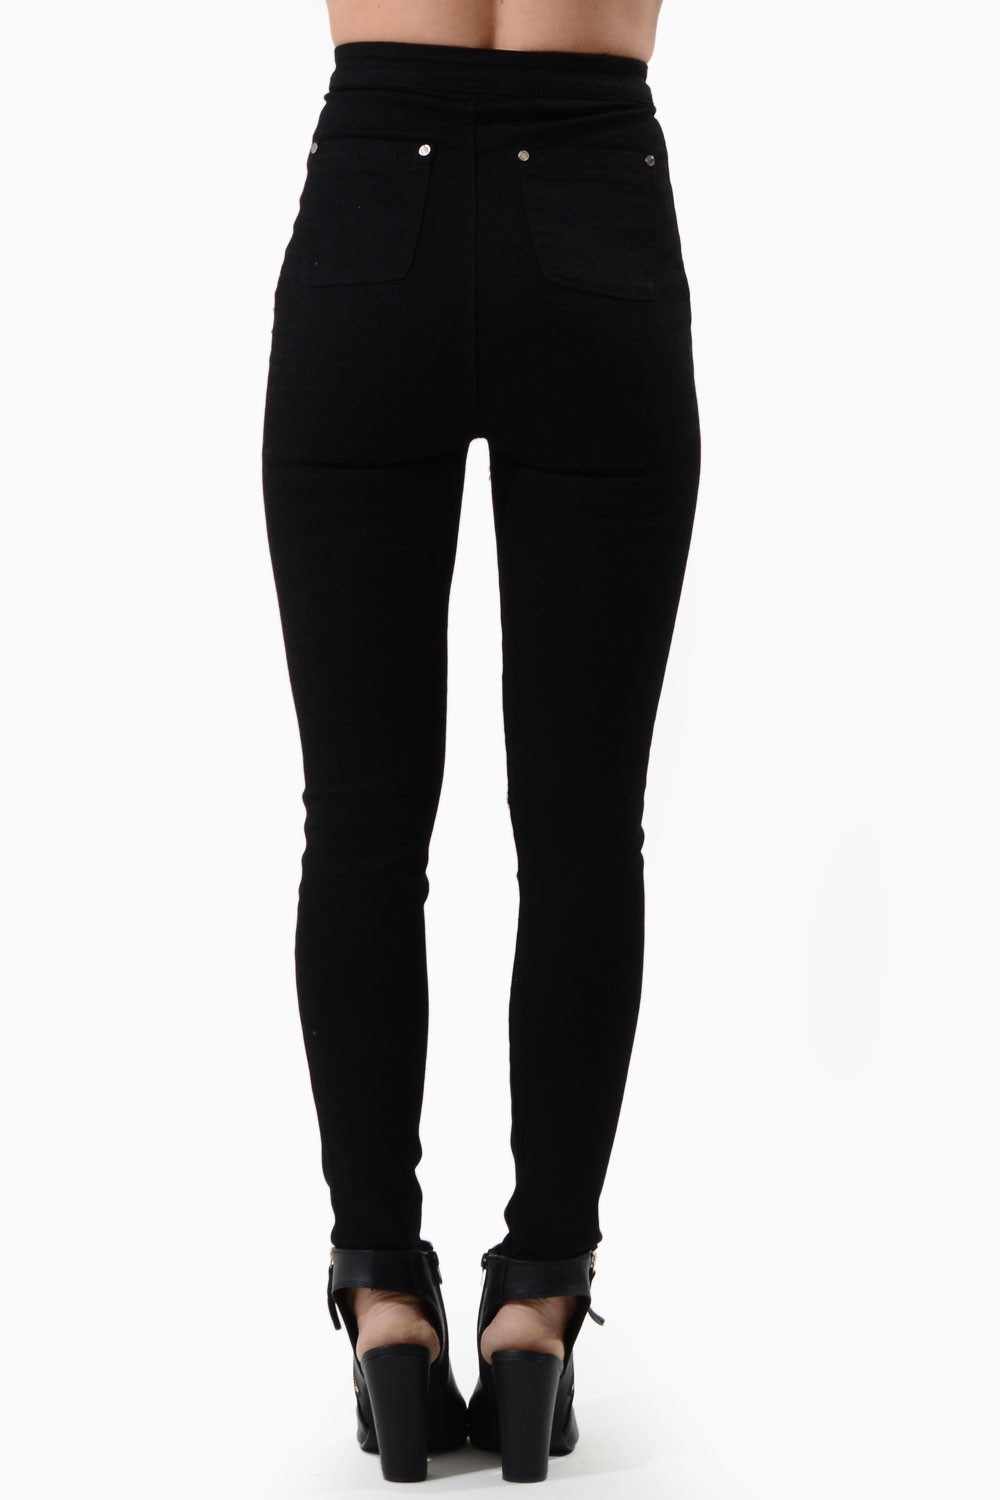 Lili High Waisted Black Jeans